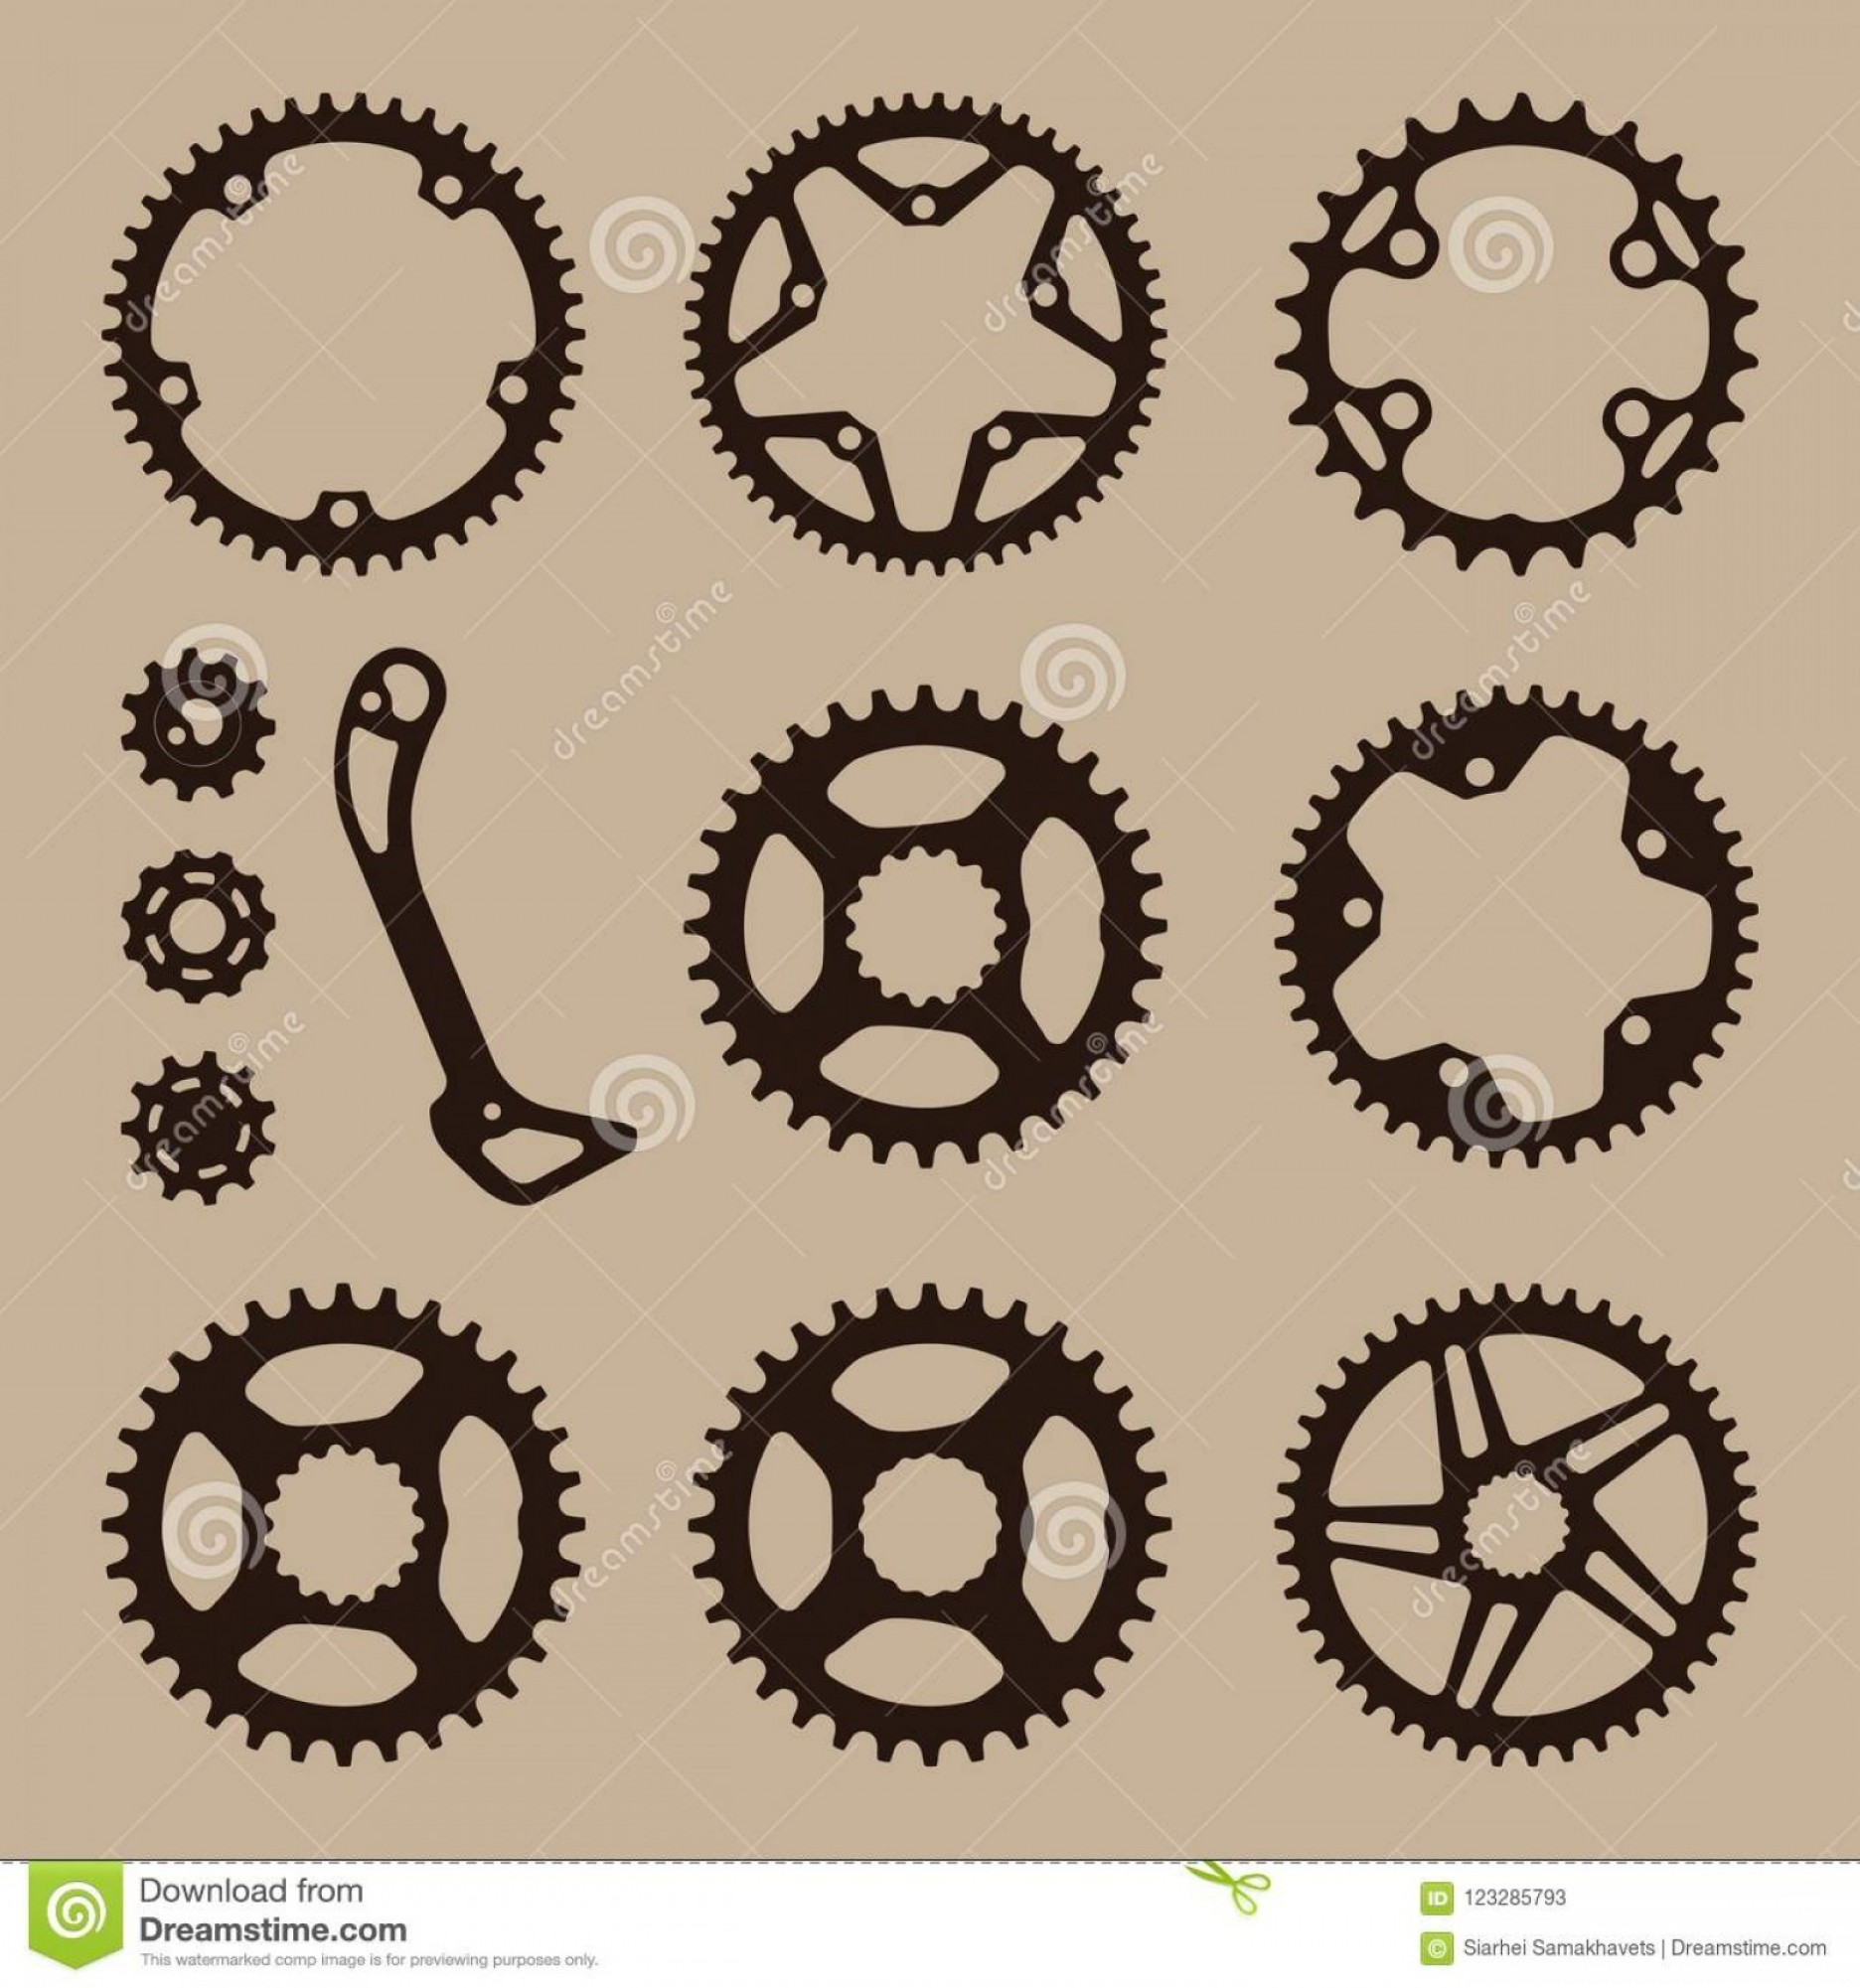 Bicycle Crank Vector Of Artwork: Black Flat Cogwheel Color Background Set Sport Bicycle Elements Gear Sprocket Symbols Chain Wheel Image